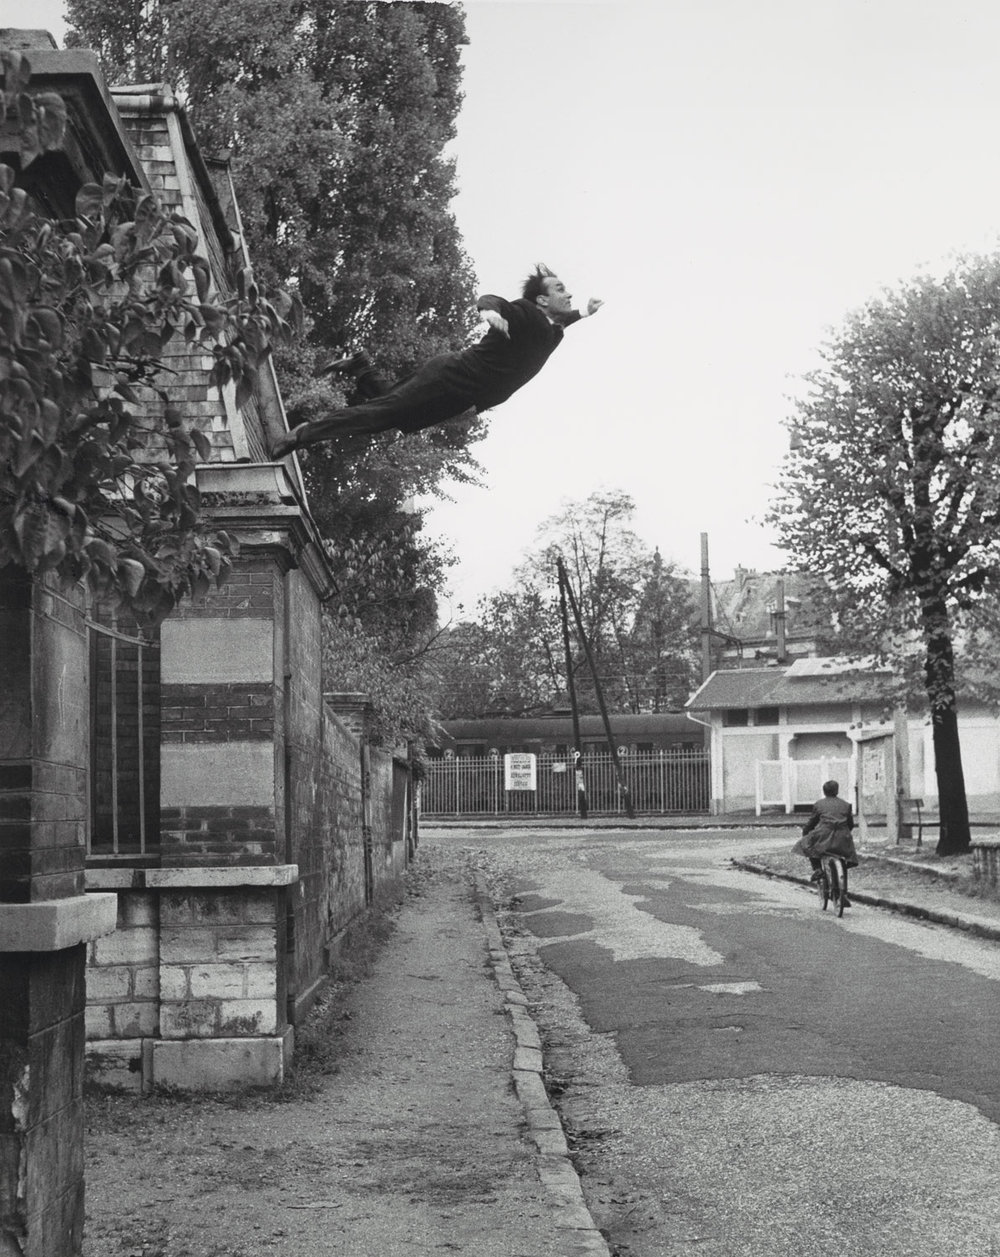 Artistic action by Yves Klein, Gelatin silver print, 1960.